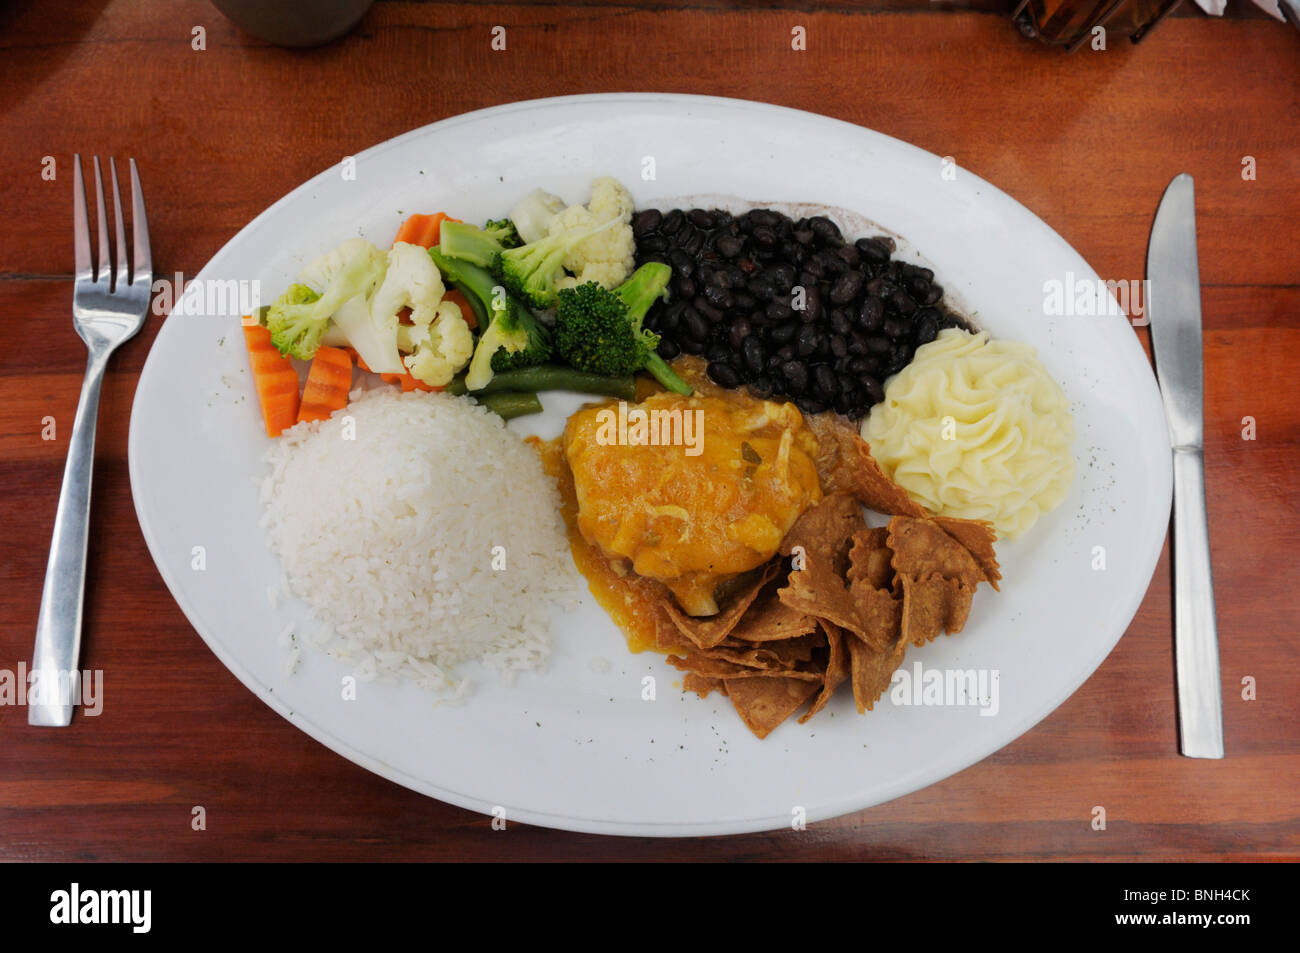 Typical Costa Rican meal, comida tipica.  Meat (chicken), vegetable, rice and beans (gallo pinto).  Restaurant in - Stock Image